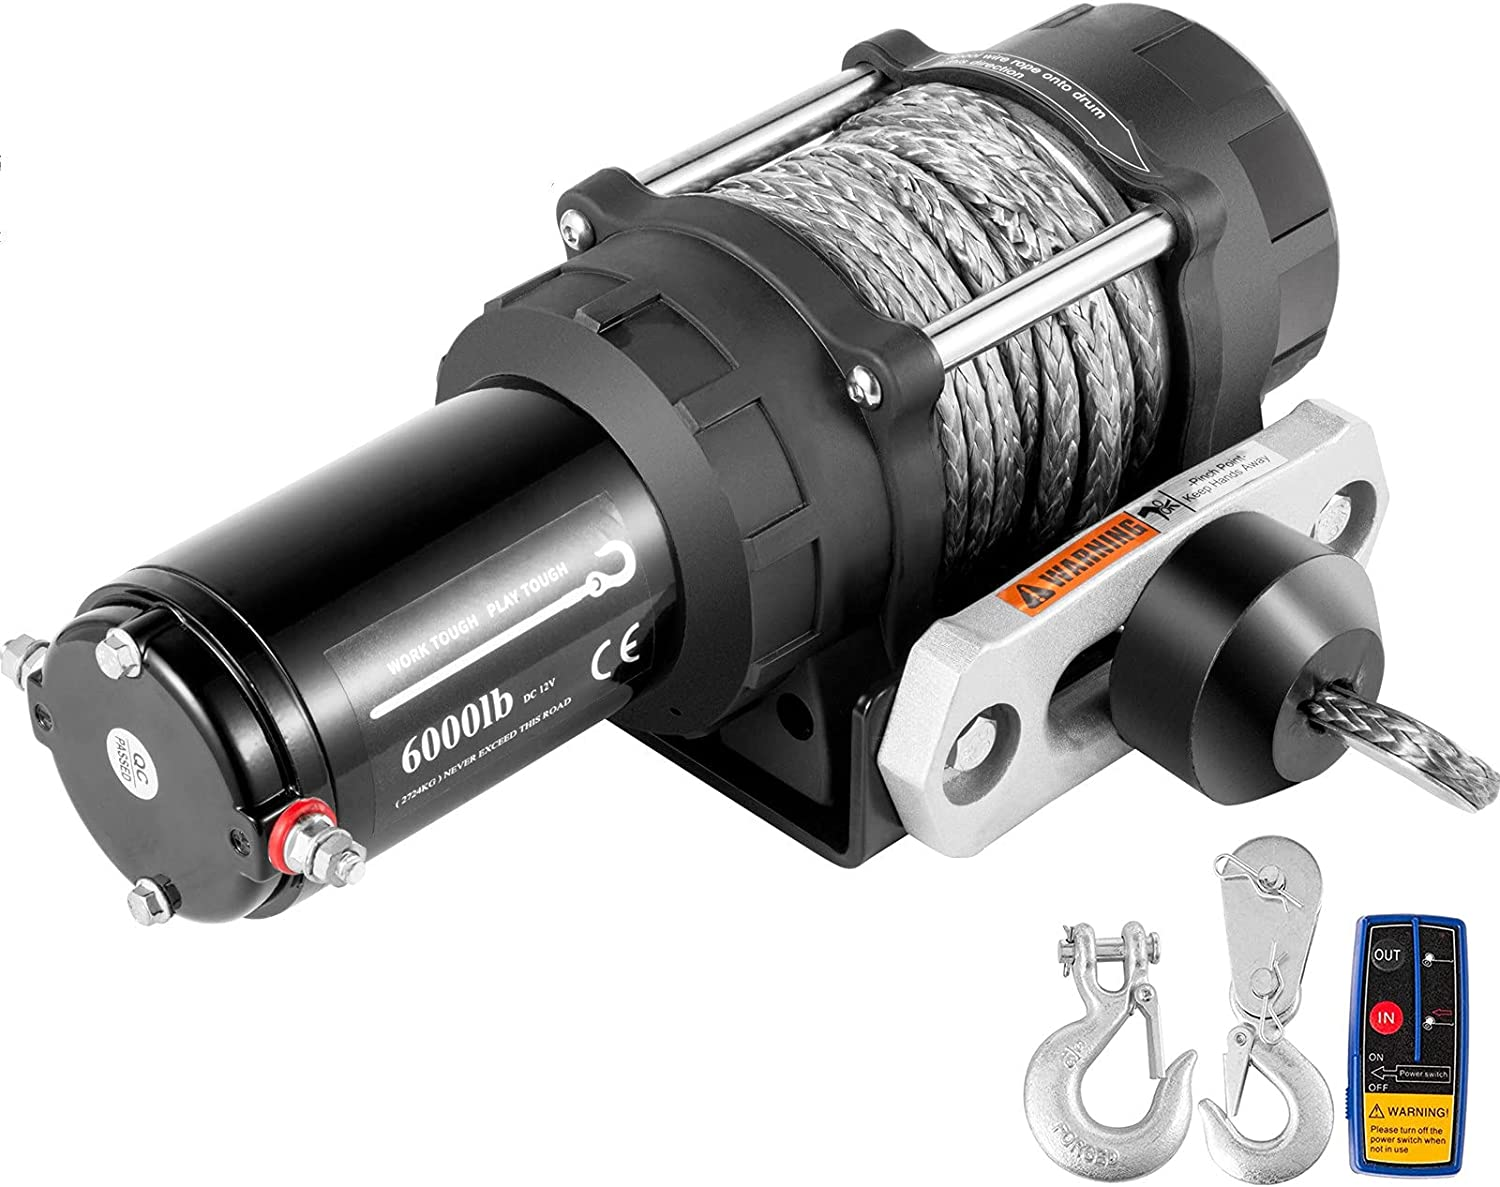 VEVOR Electric Winch 6000lb Sales of SALE Max 52% OFF items from new works Load W Truck Rope Capacity Synthetic